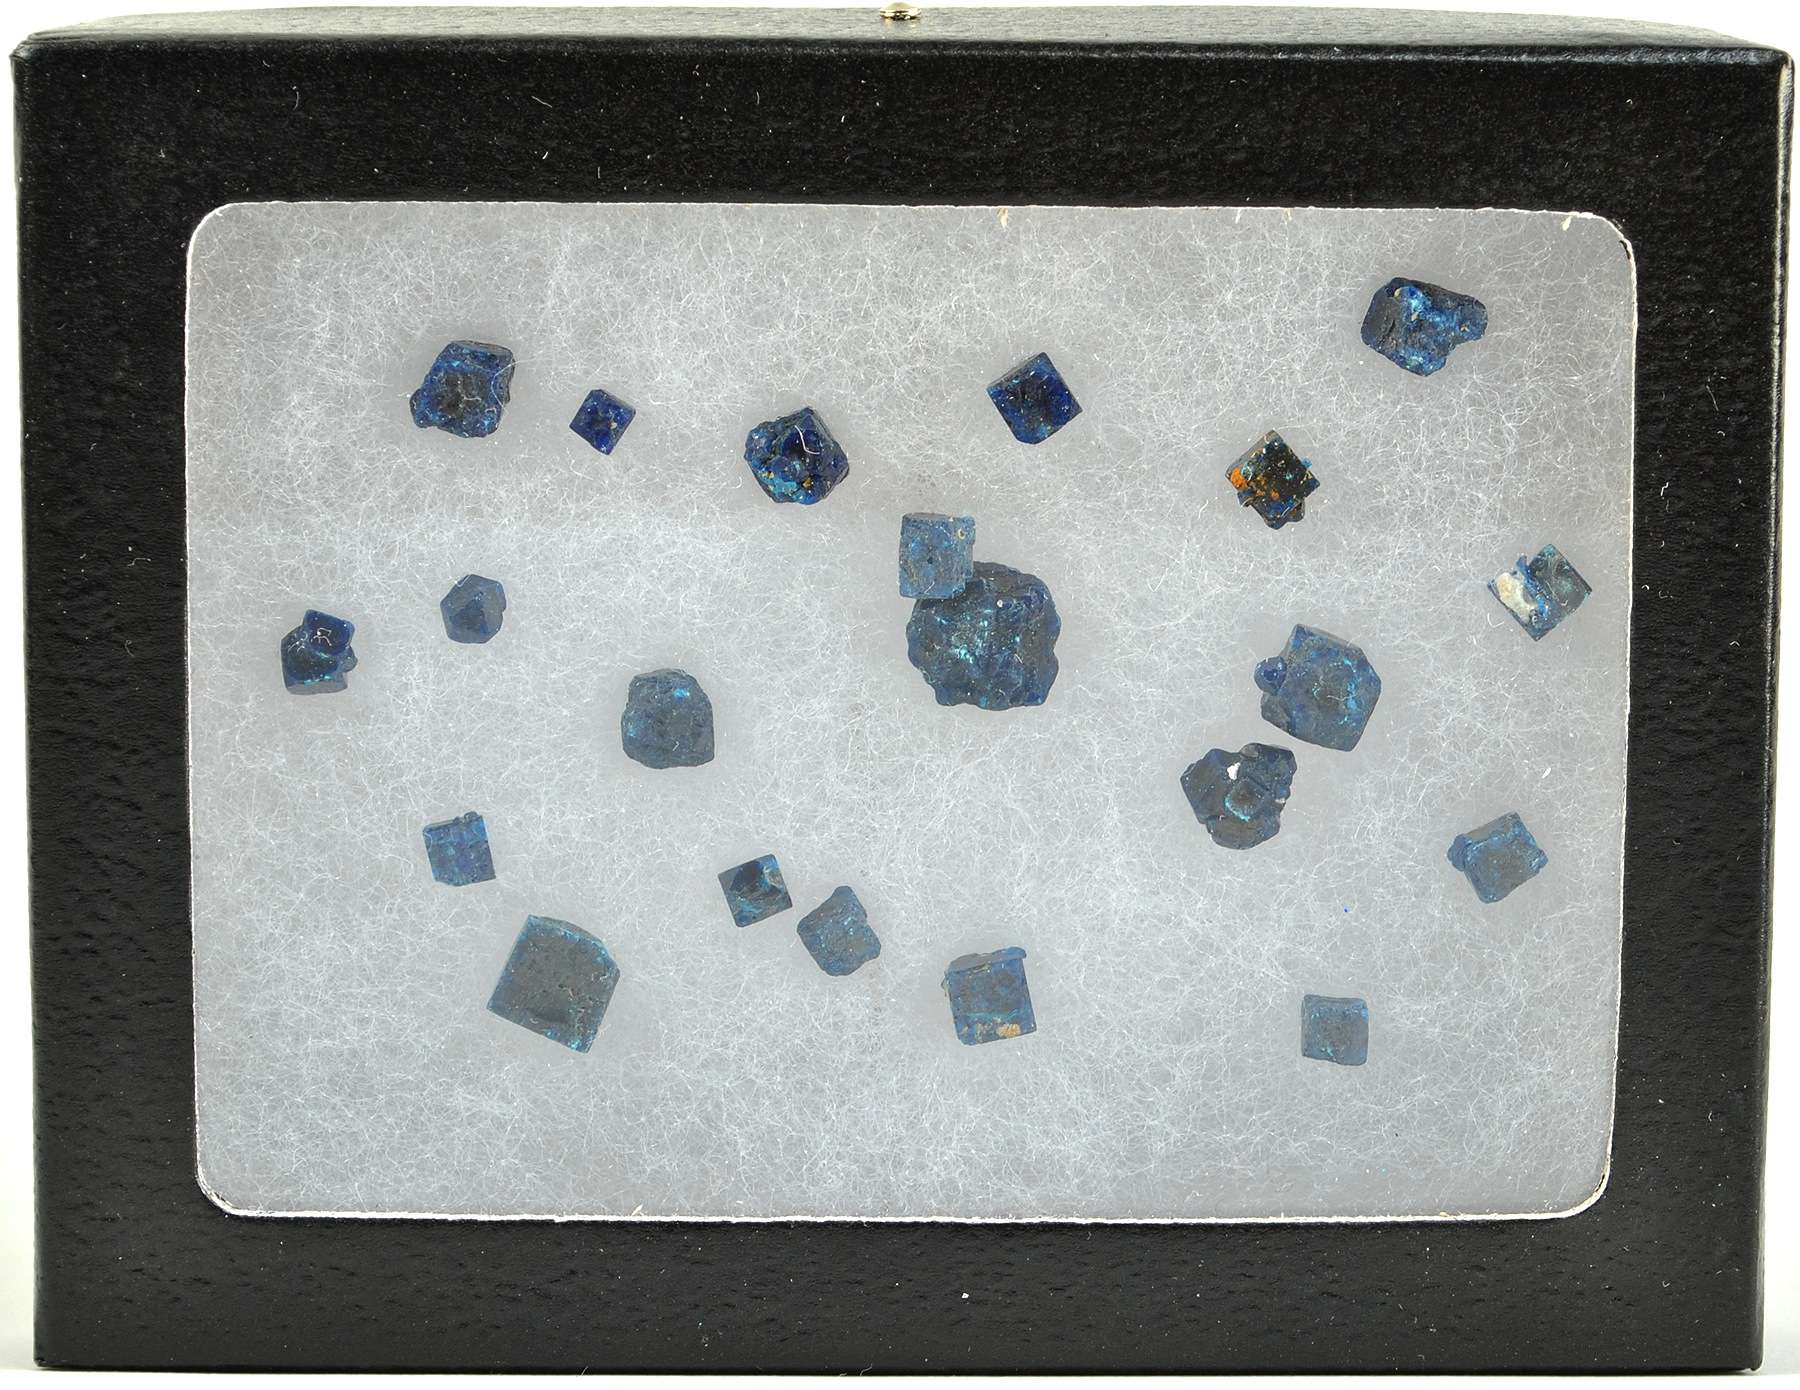 This Ryker Mount box approx 20 crystals varying shapes sizes boleite